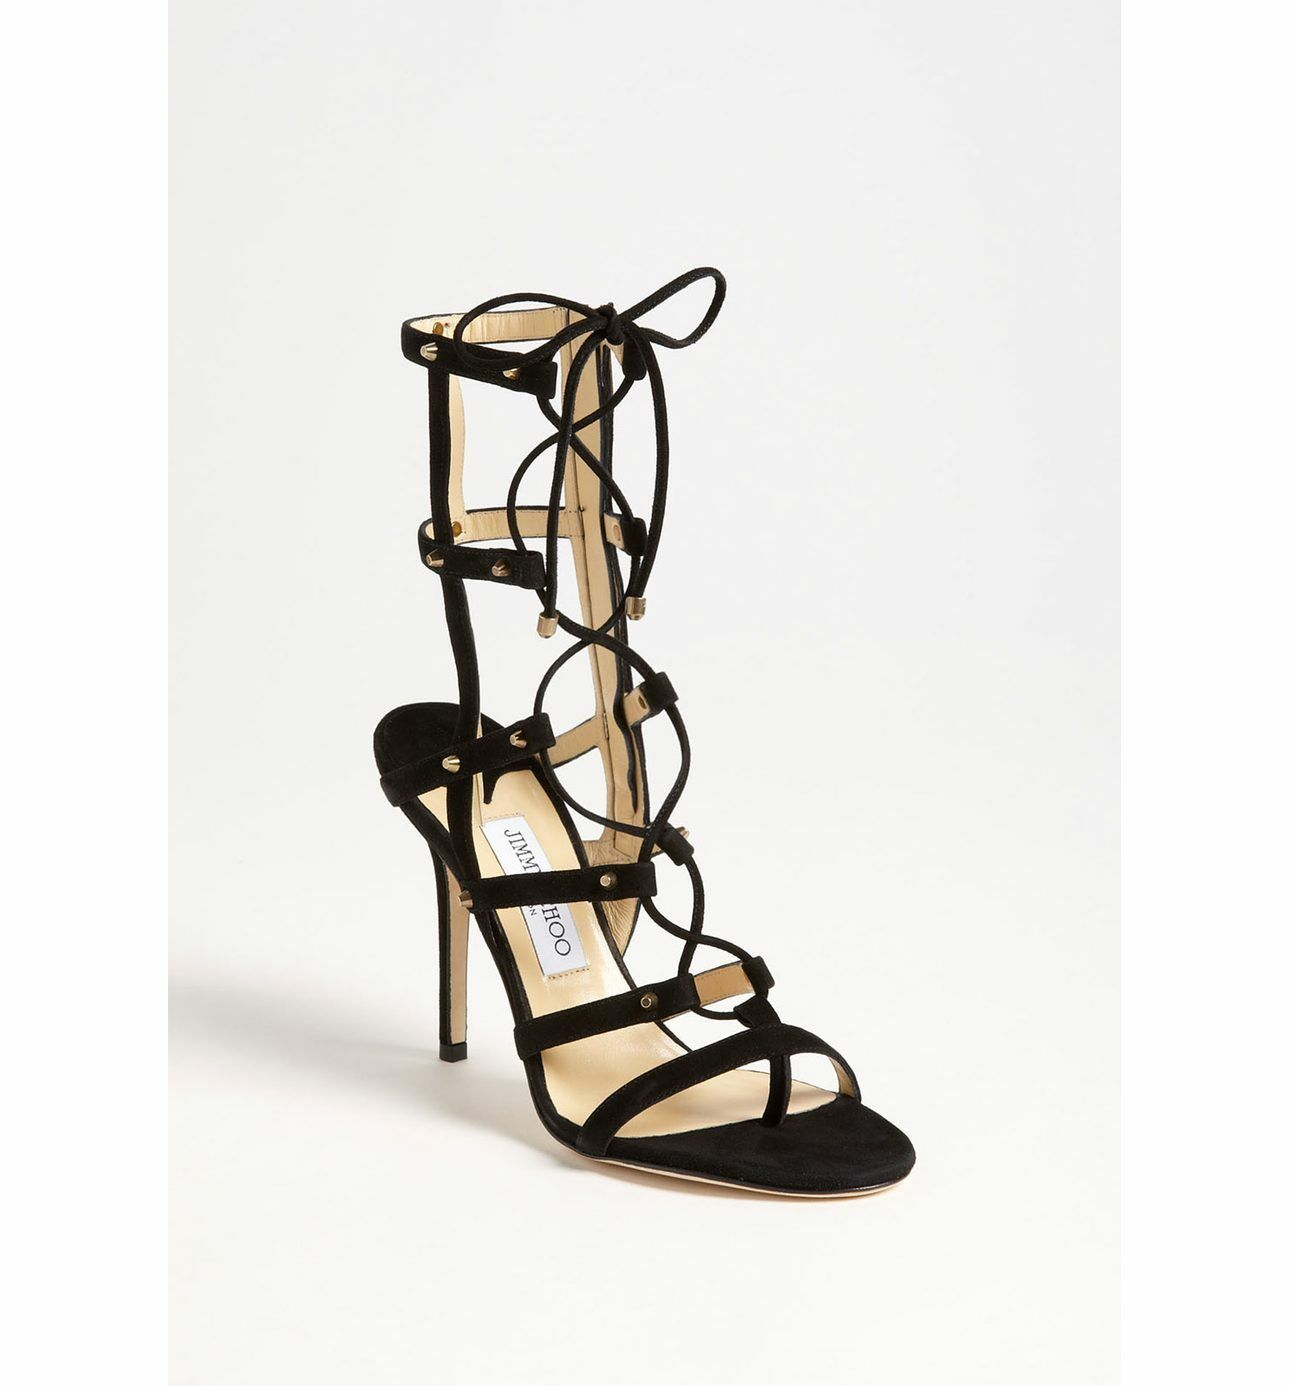 NIB  1095 Jimmy Choo MEDDLE Caged Lace Up Sandal Heel shoes Black Suede 38.5  8.5